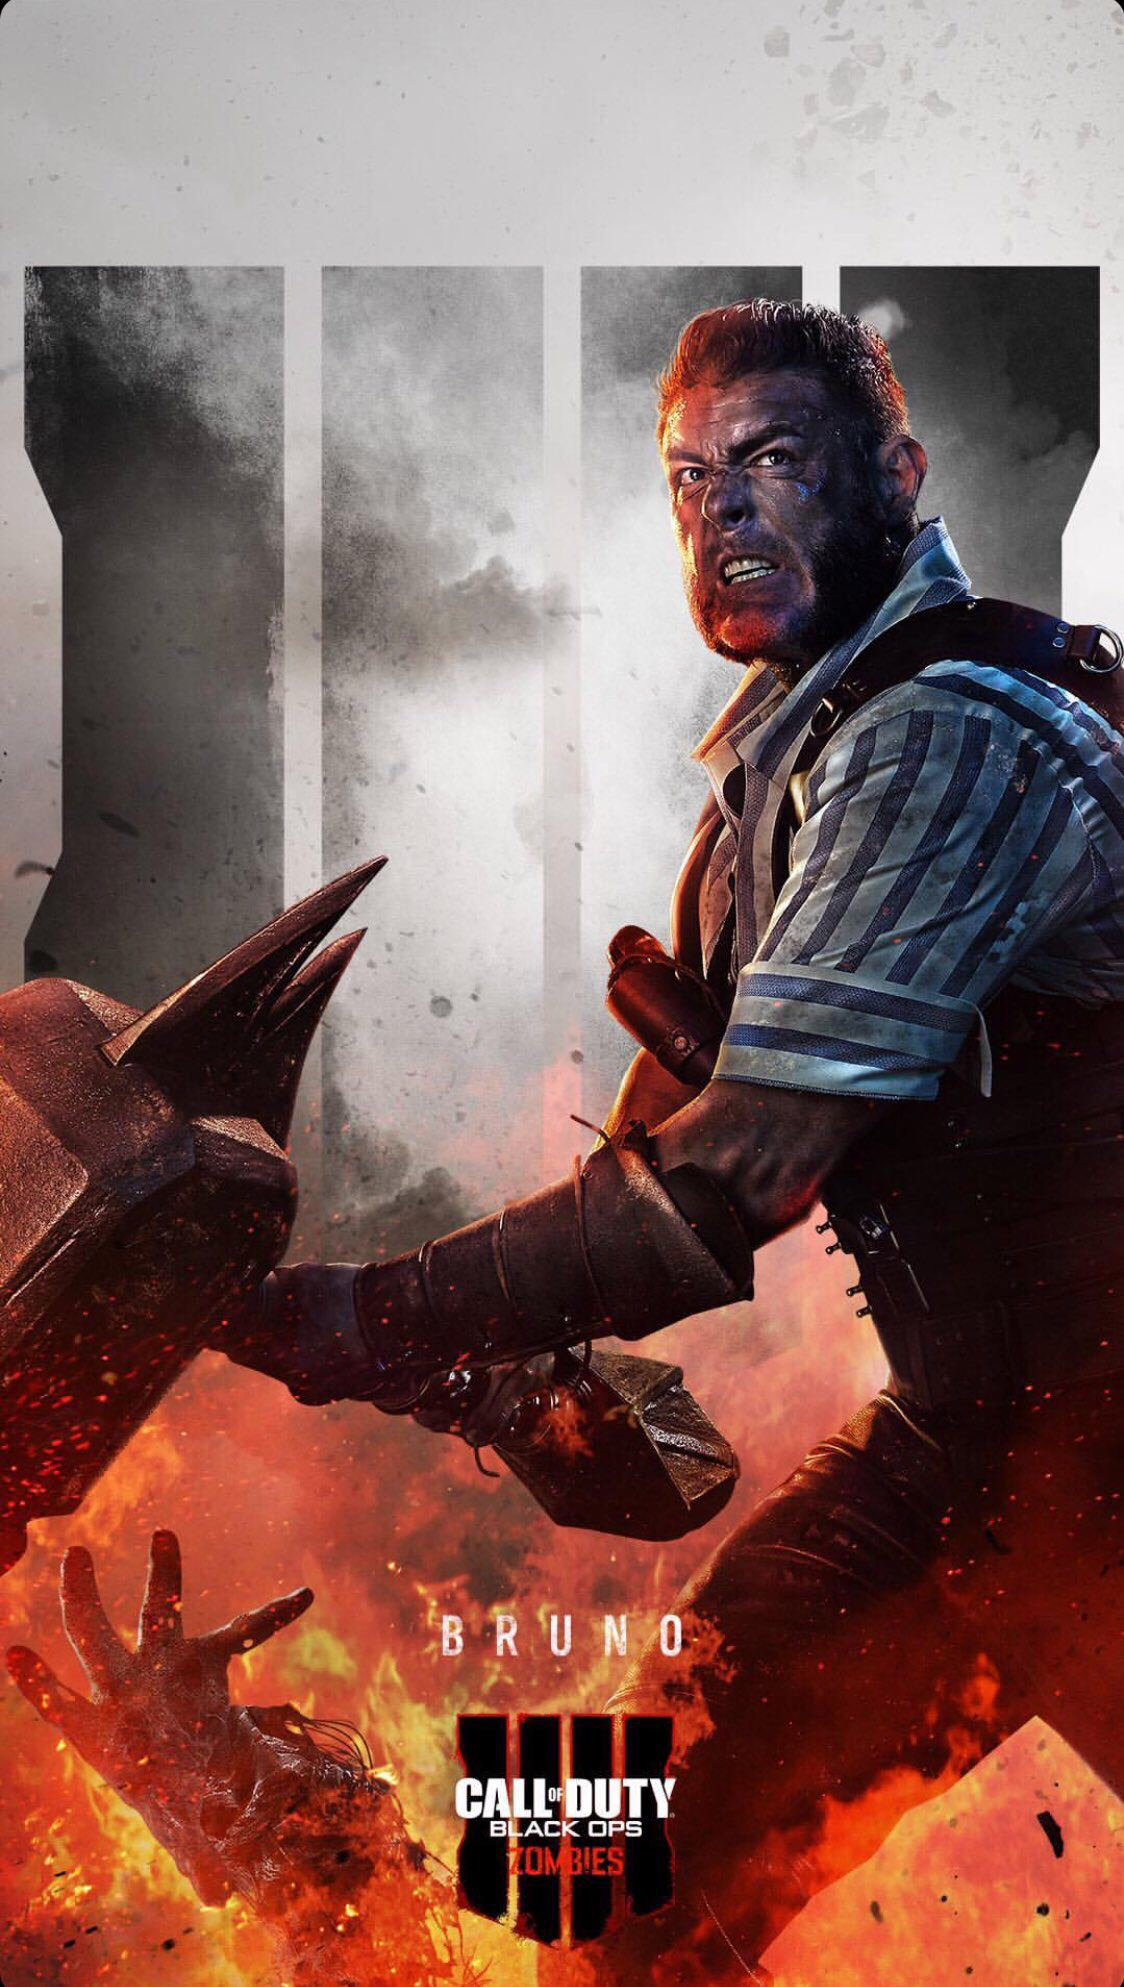 Call Of Duty On Instagram Has Shared New Phone Wallpapers For Black Ops 4 Zombies And The Cast Characters